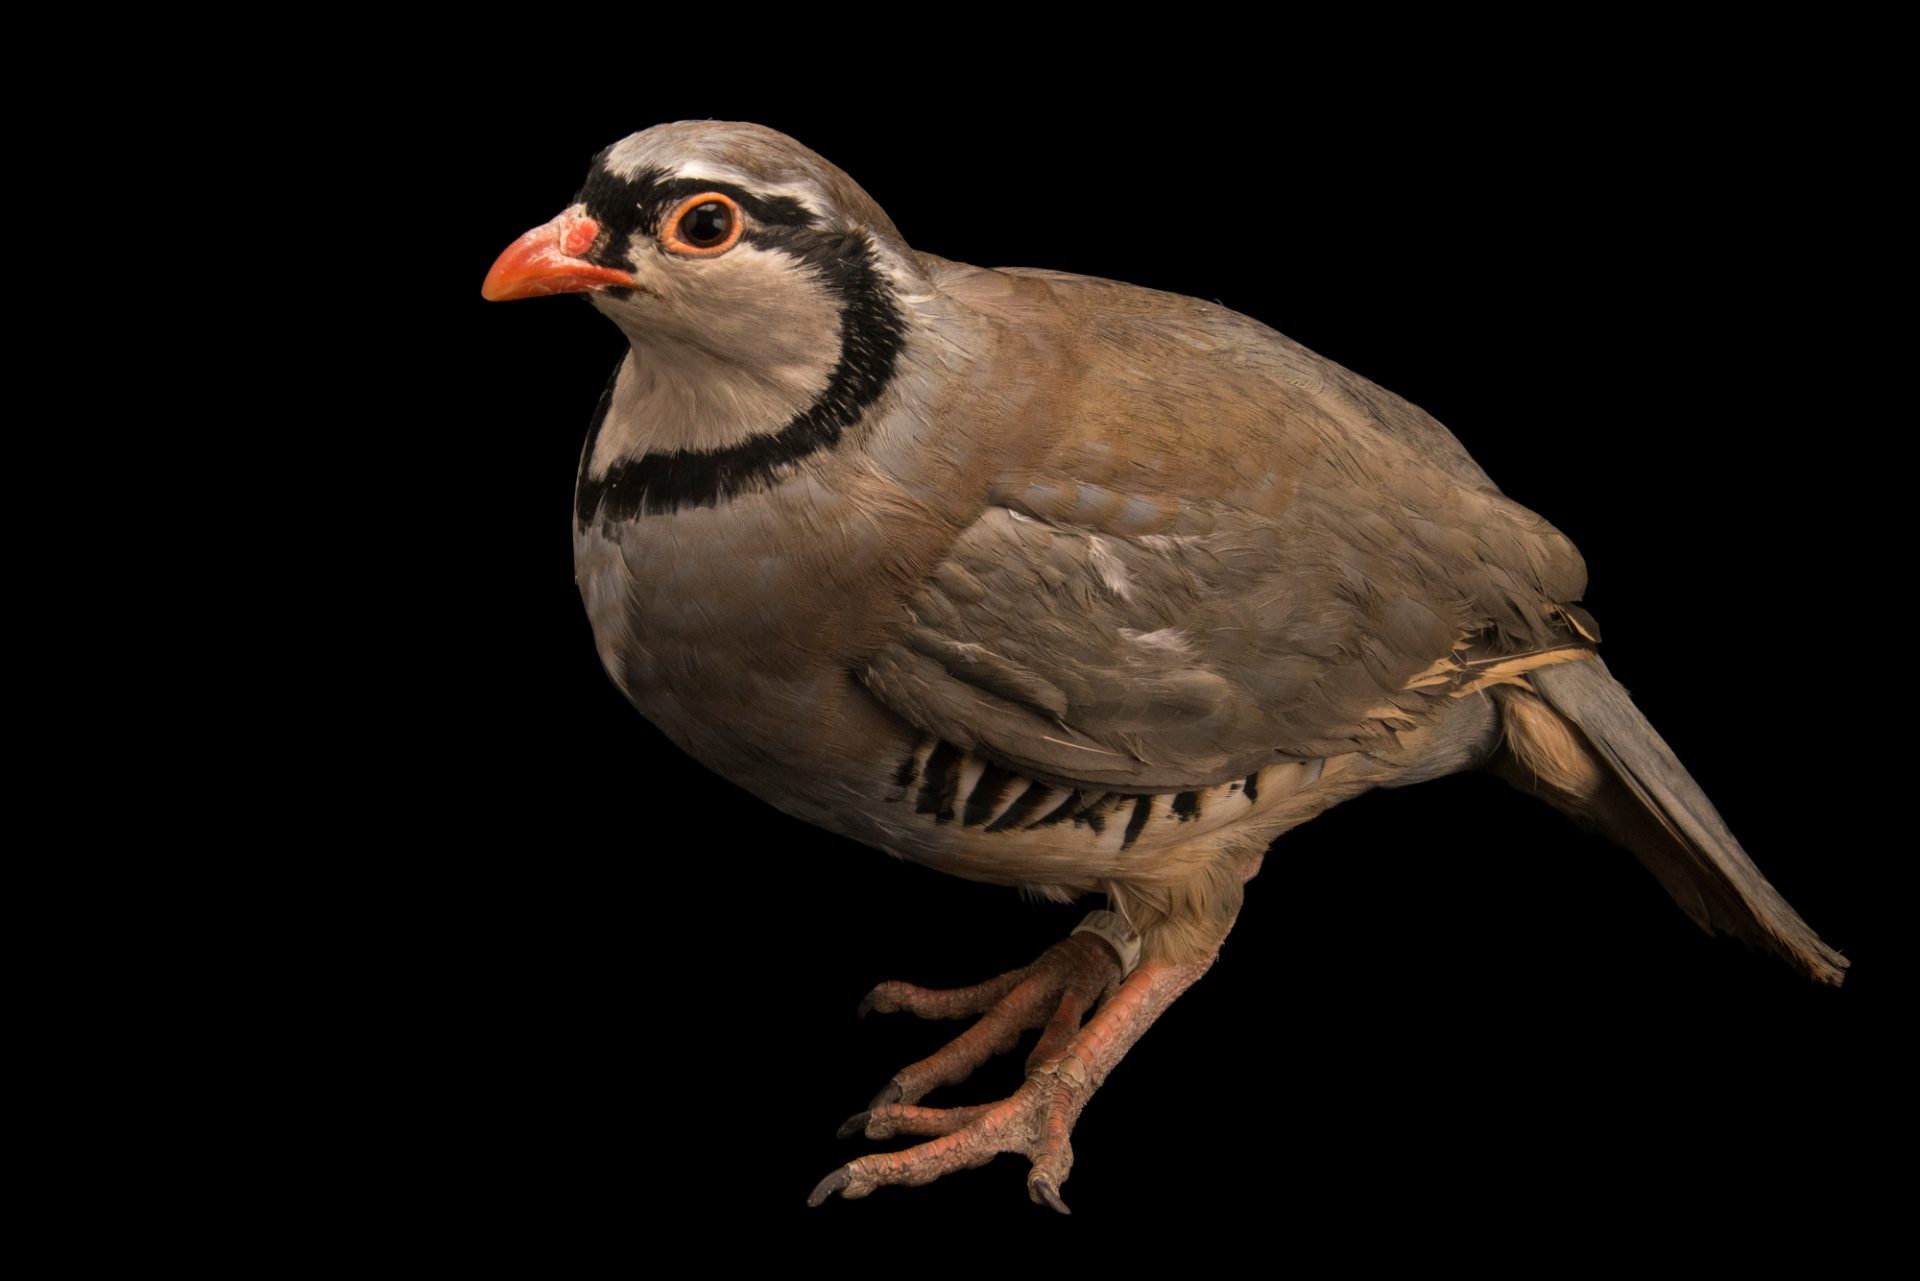 Photo: Rock partridge (Alectoris graeca saxatilis) at Alpenzoo in Innsbruck, Austria.